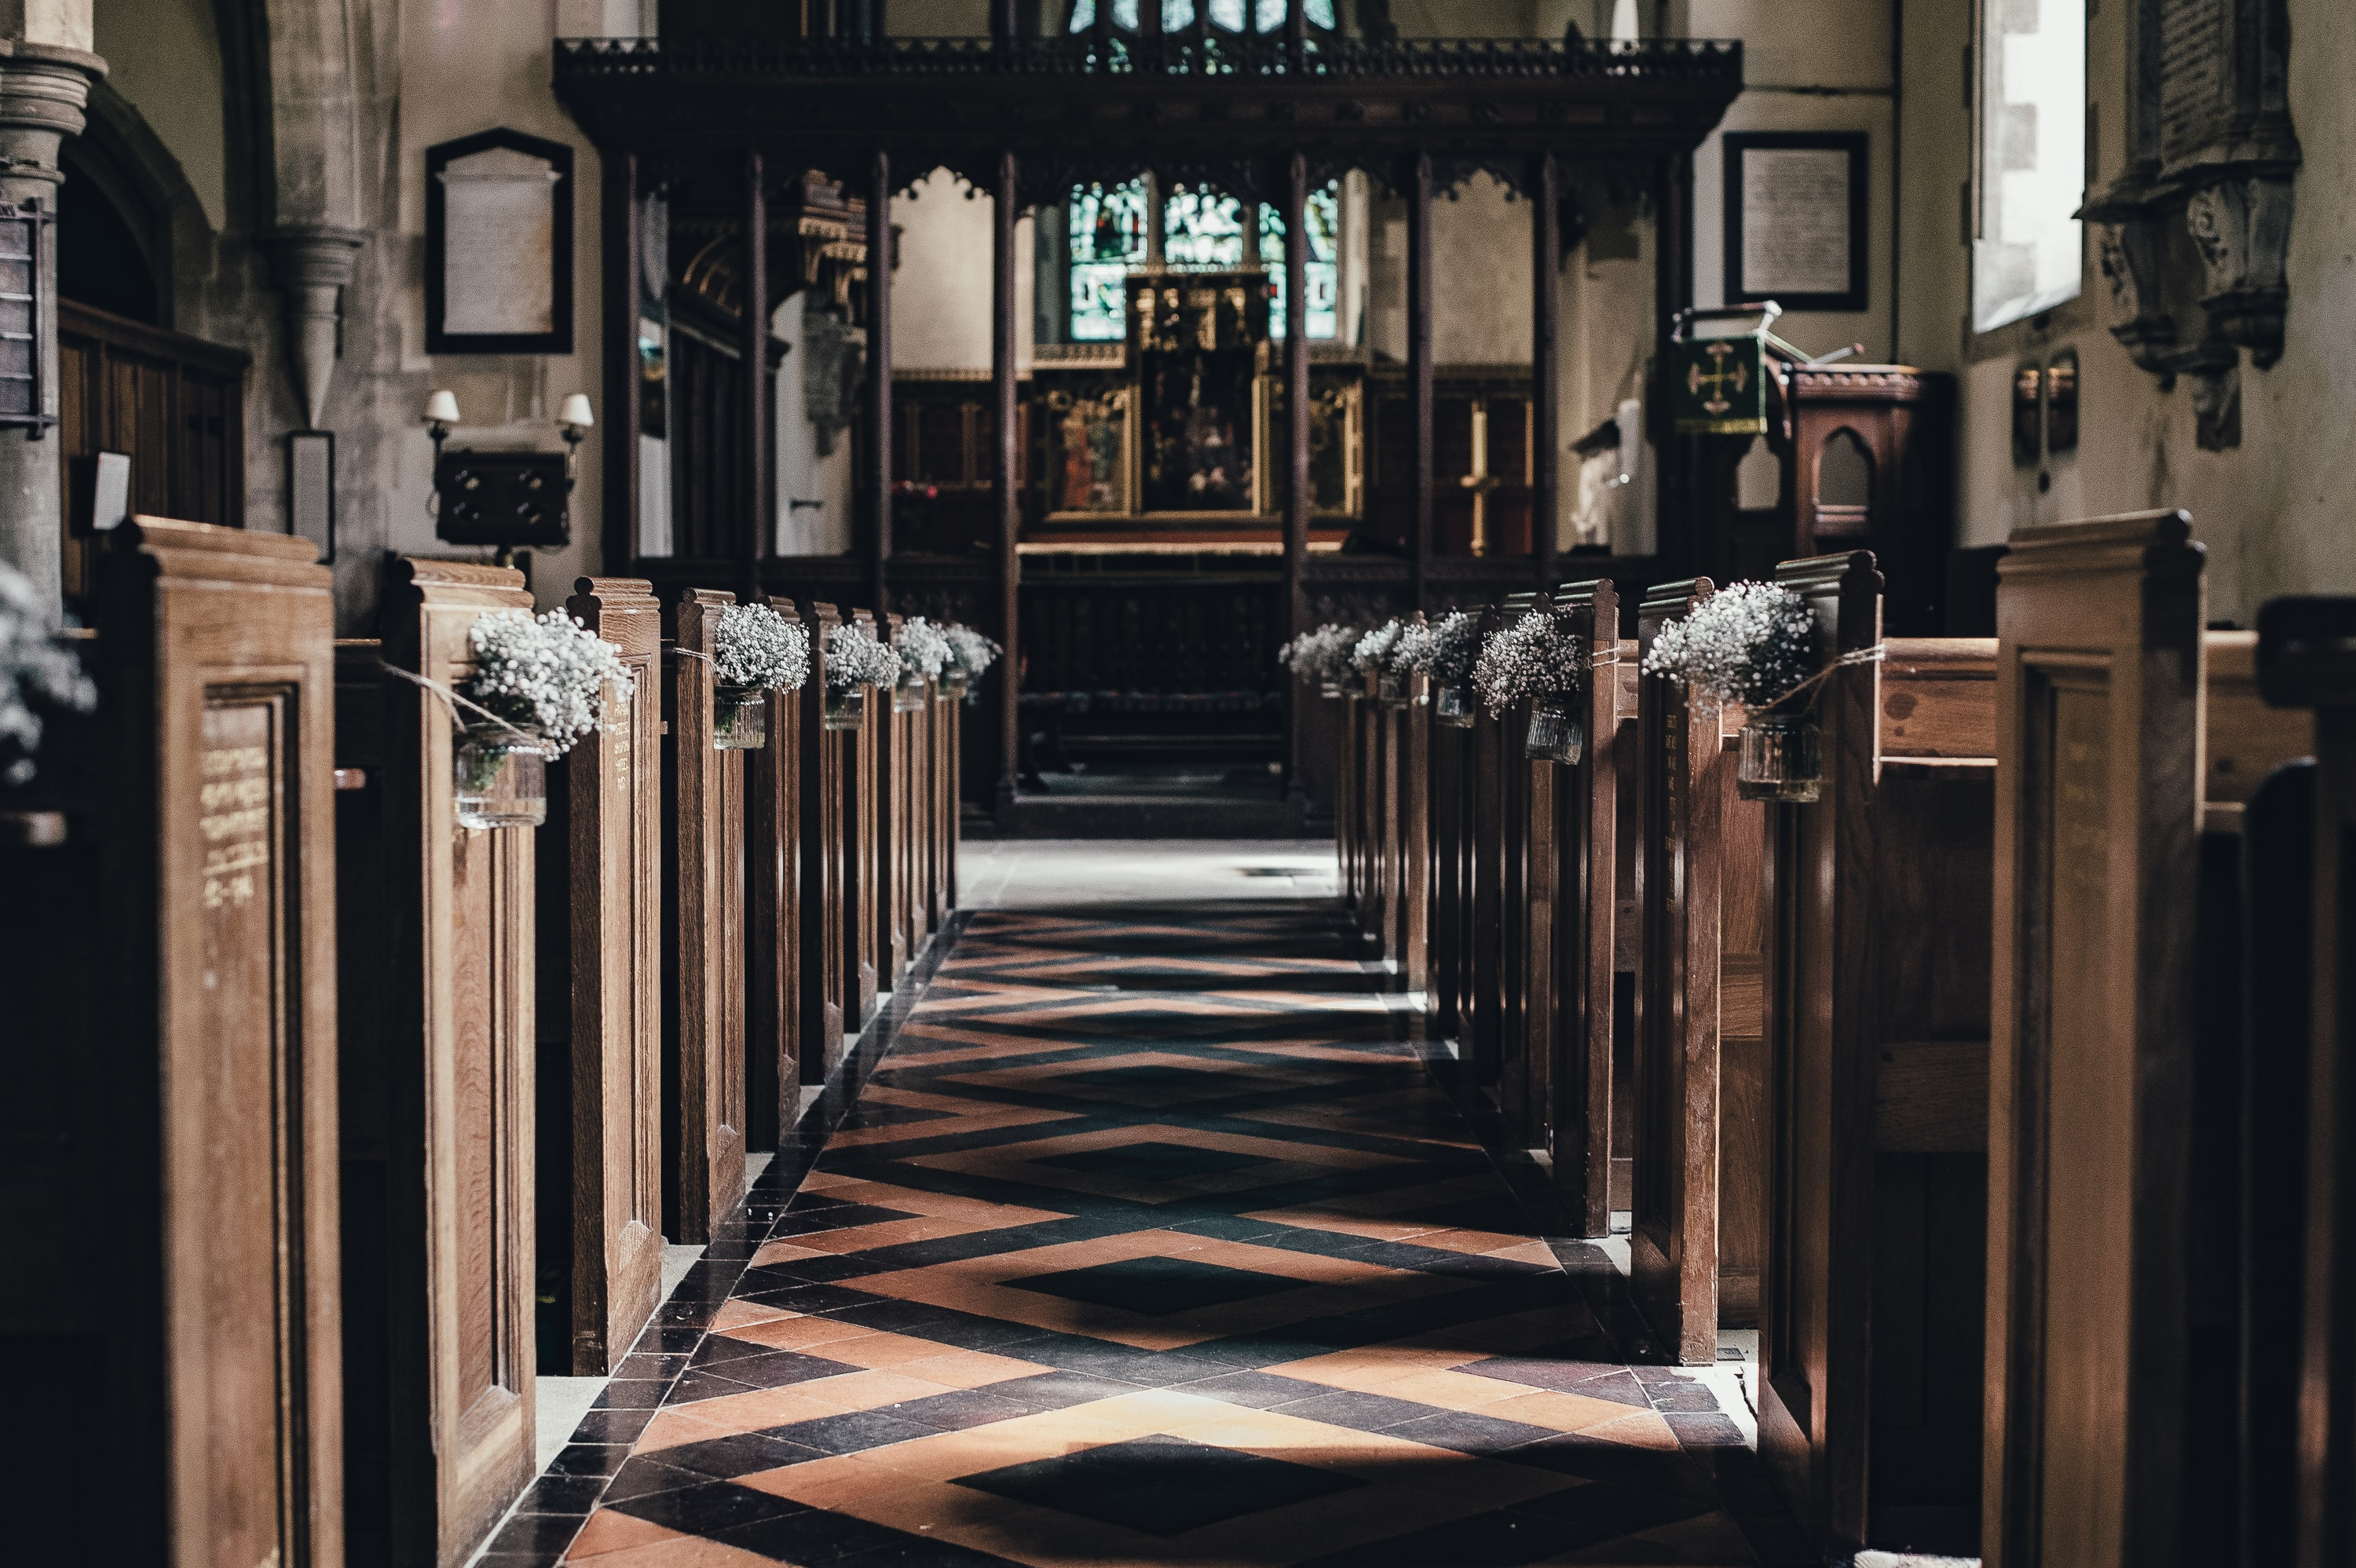 Church aisle with wooden benches and tile floor leading towards the wedding altar